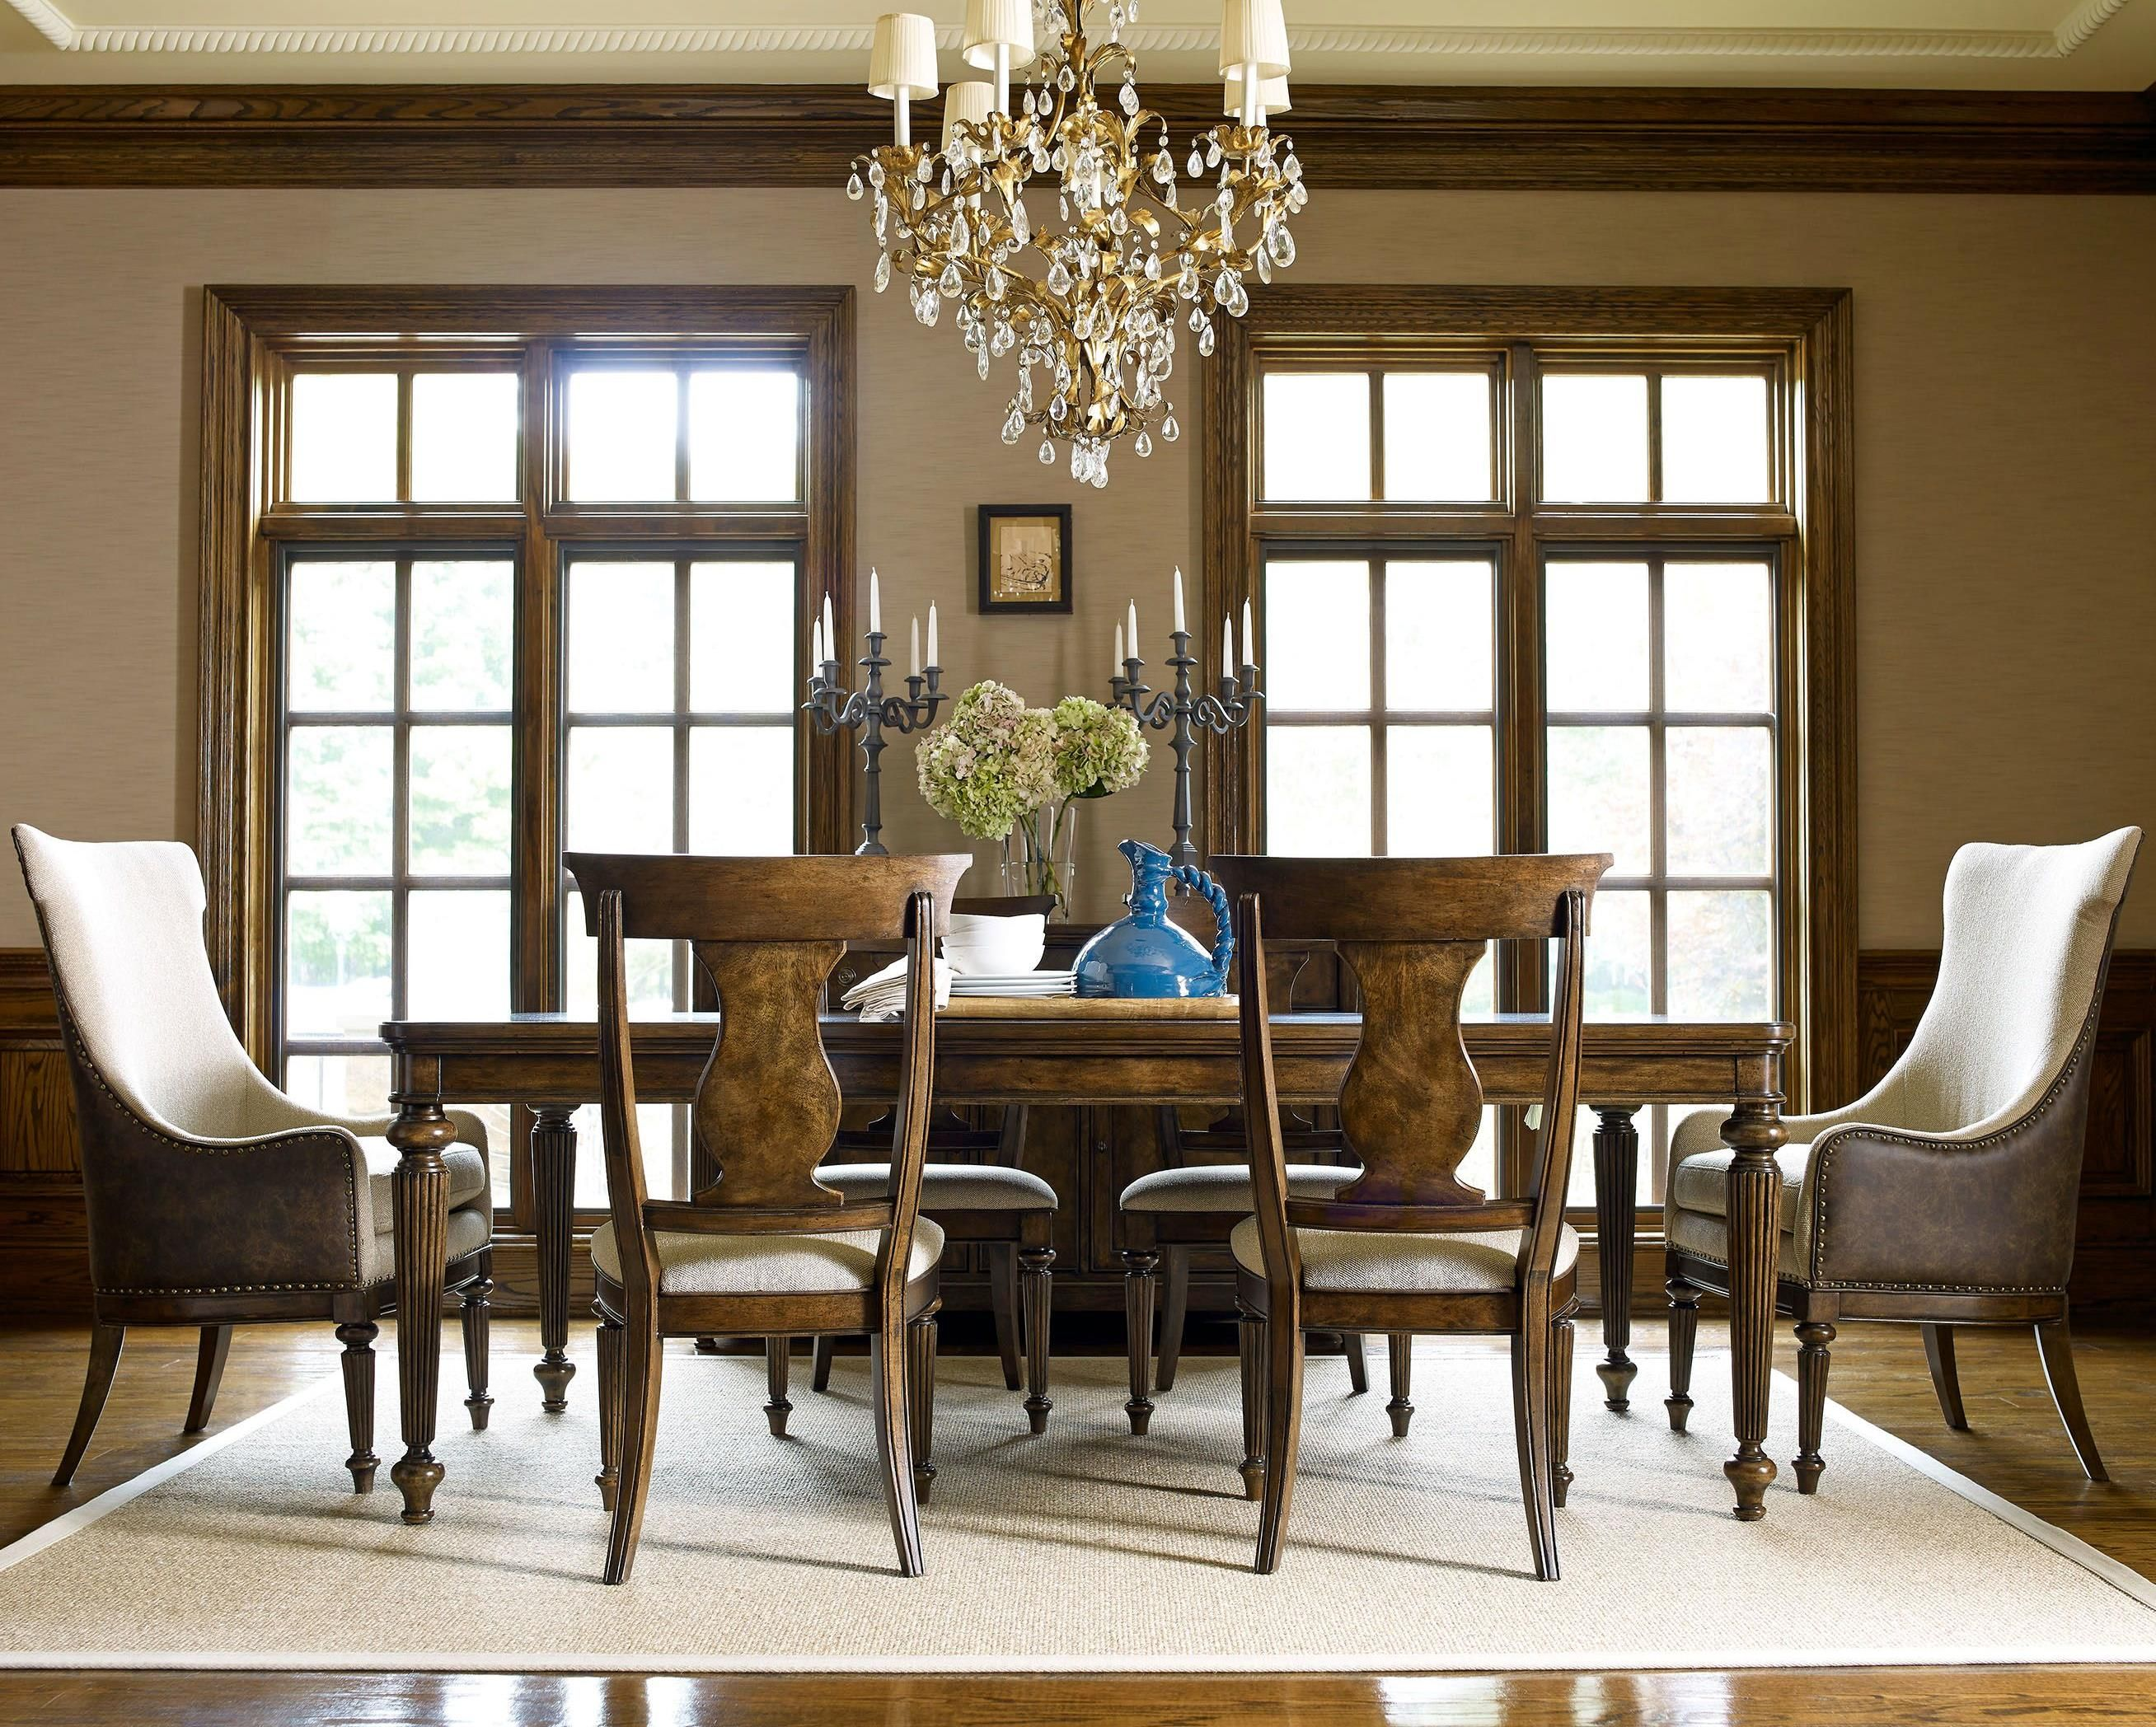 Legacy Classic Furniture Dining Room Decor Country Area Rug Dining Room Dining Room Sets